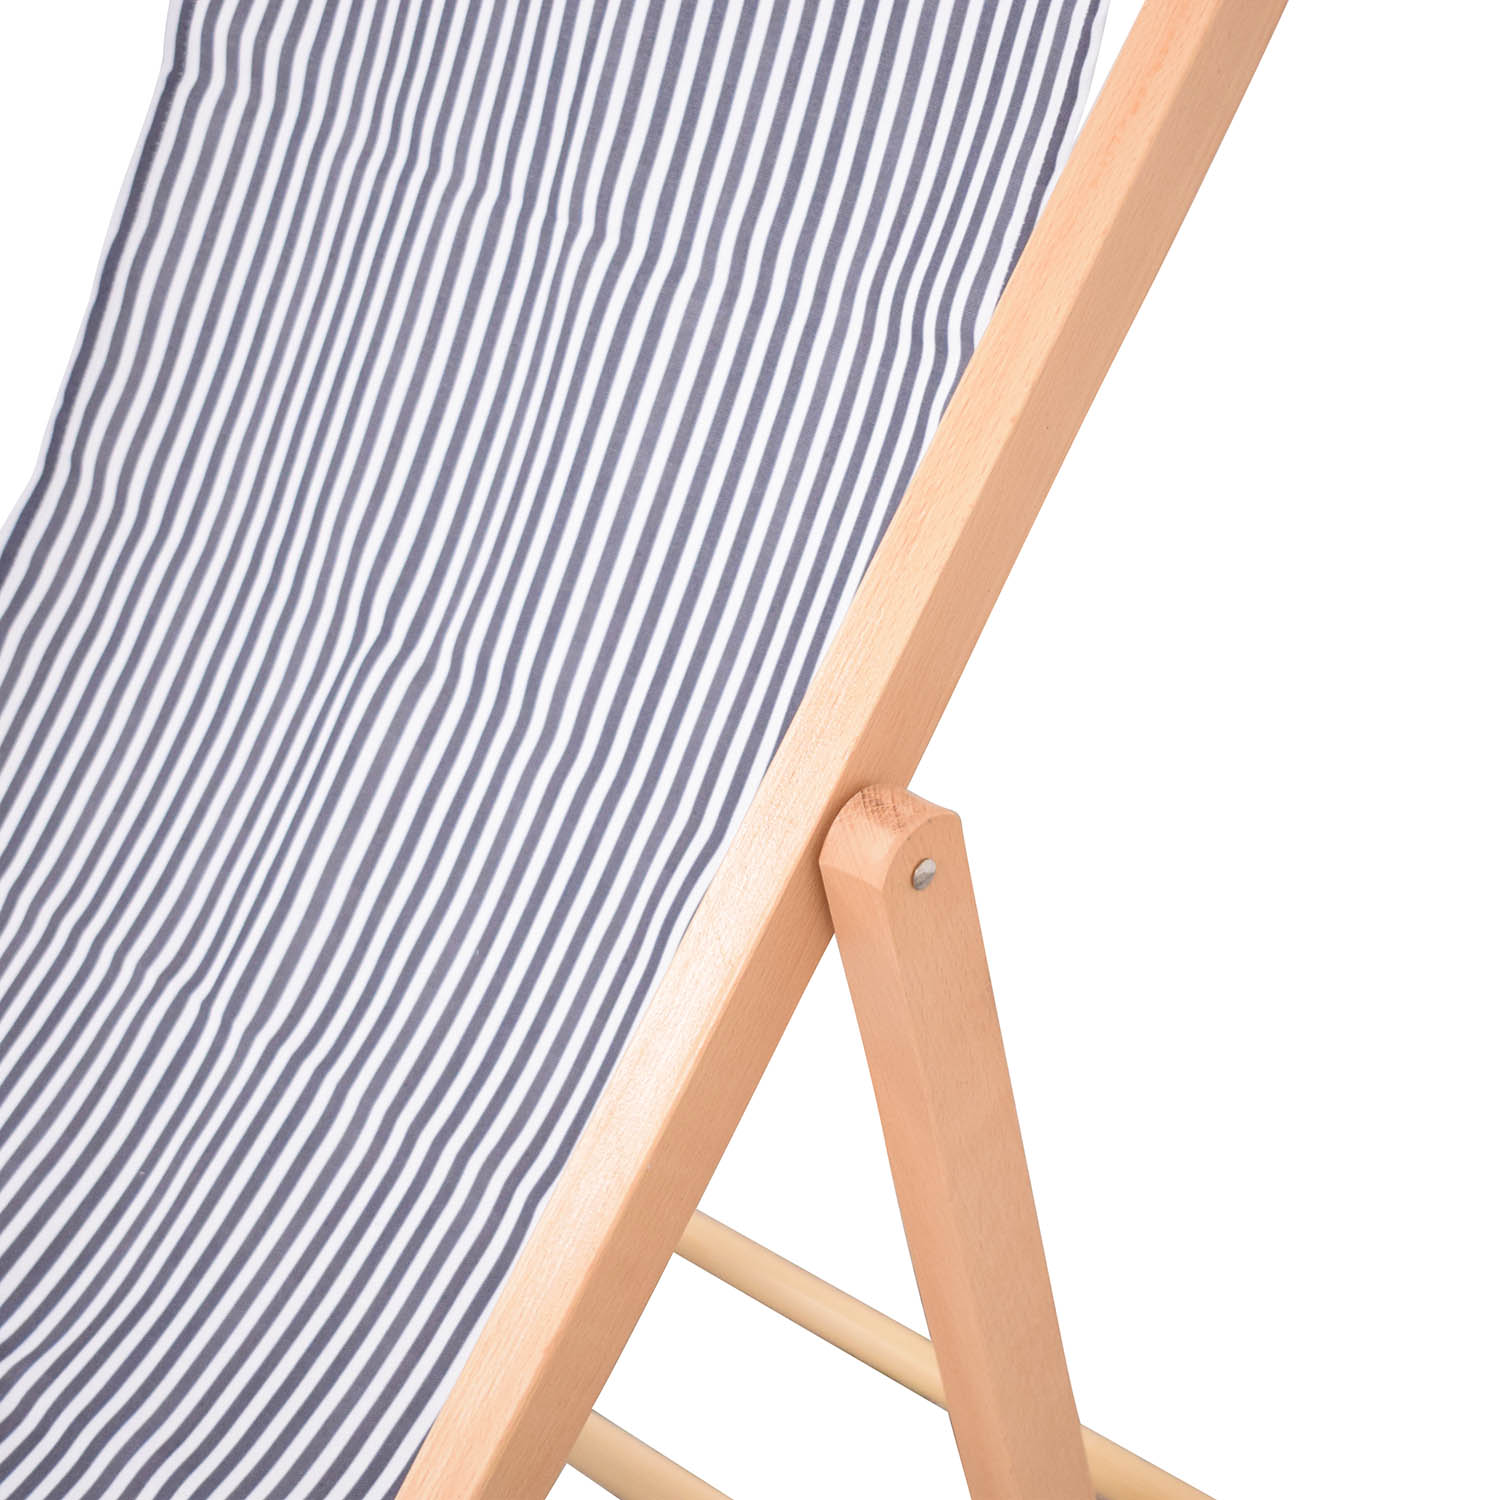 The Inside The Inside Cabana Chair with Sling for sale